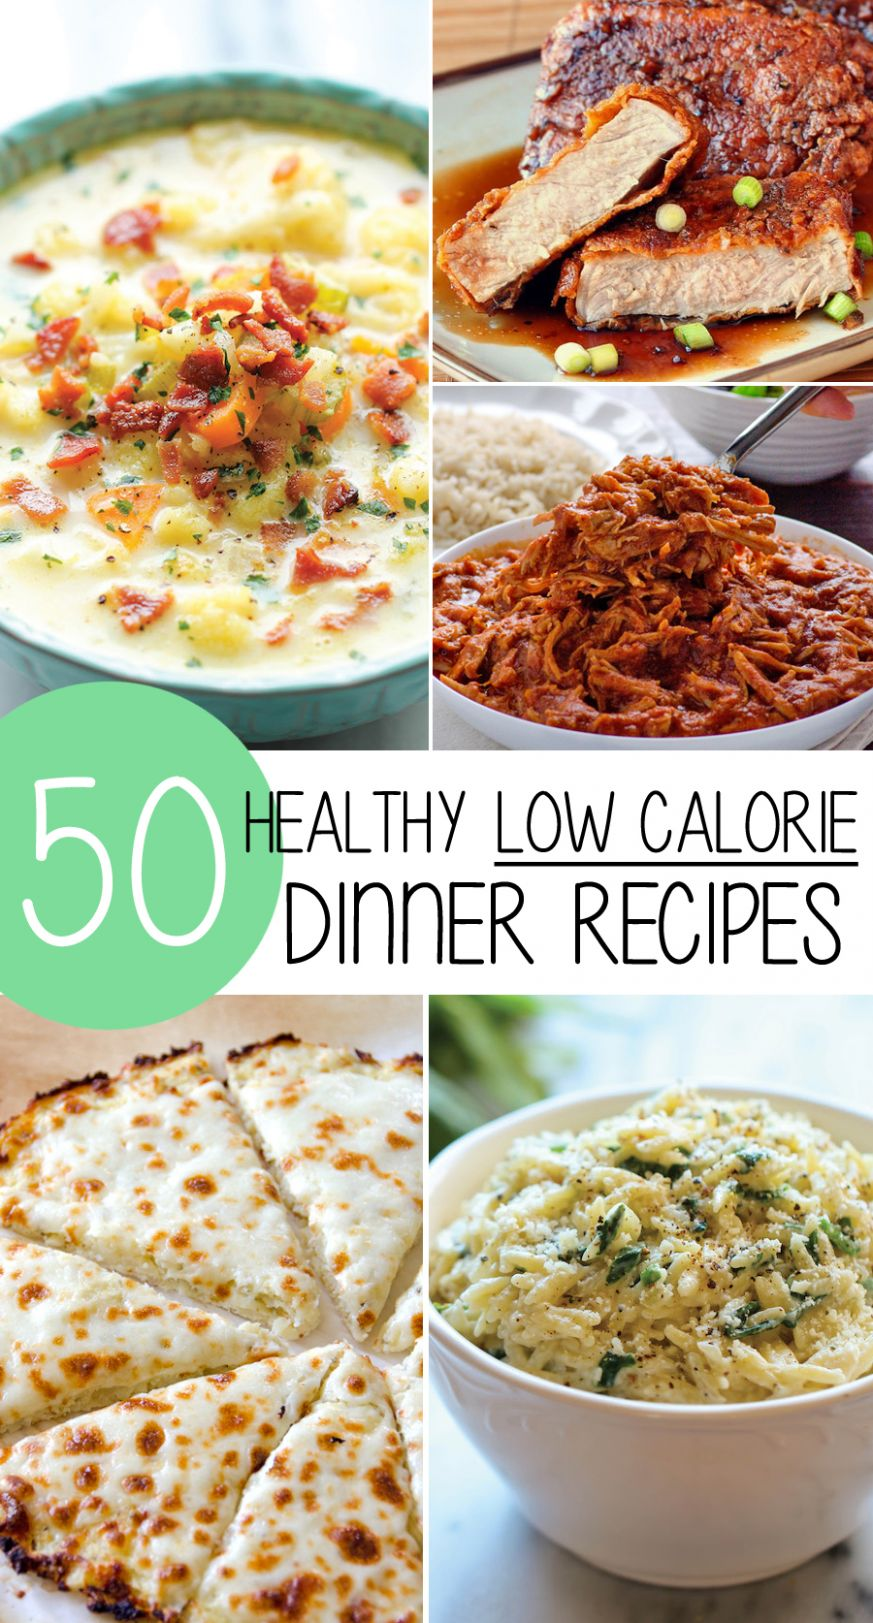 12 Healthy Low Calorie Weight Loss Dinner Recipes! – TrimmedandToned